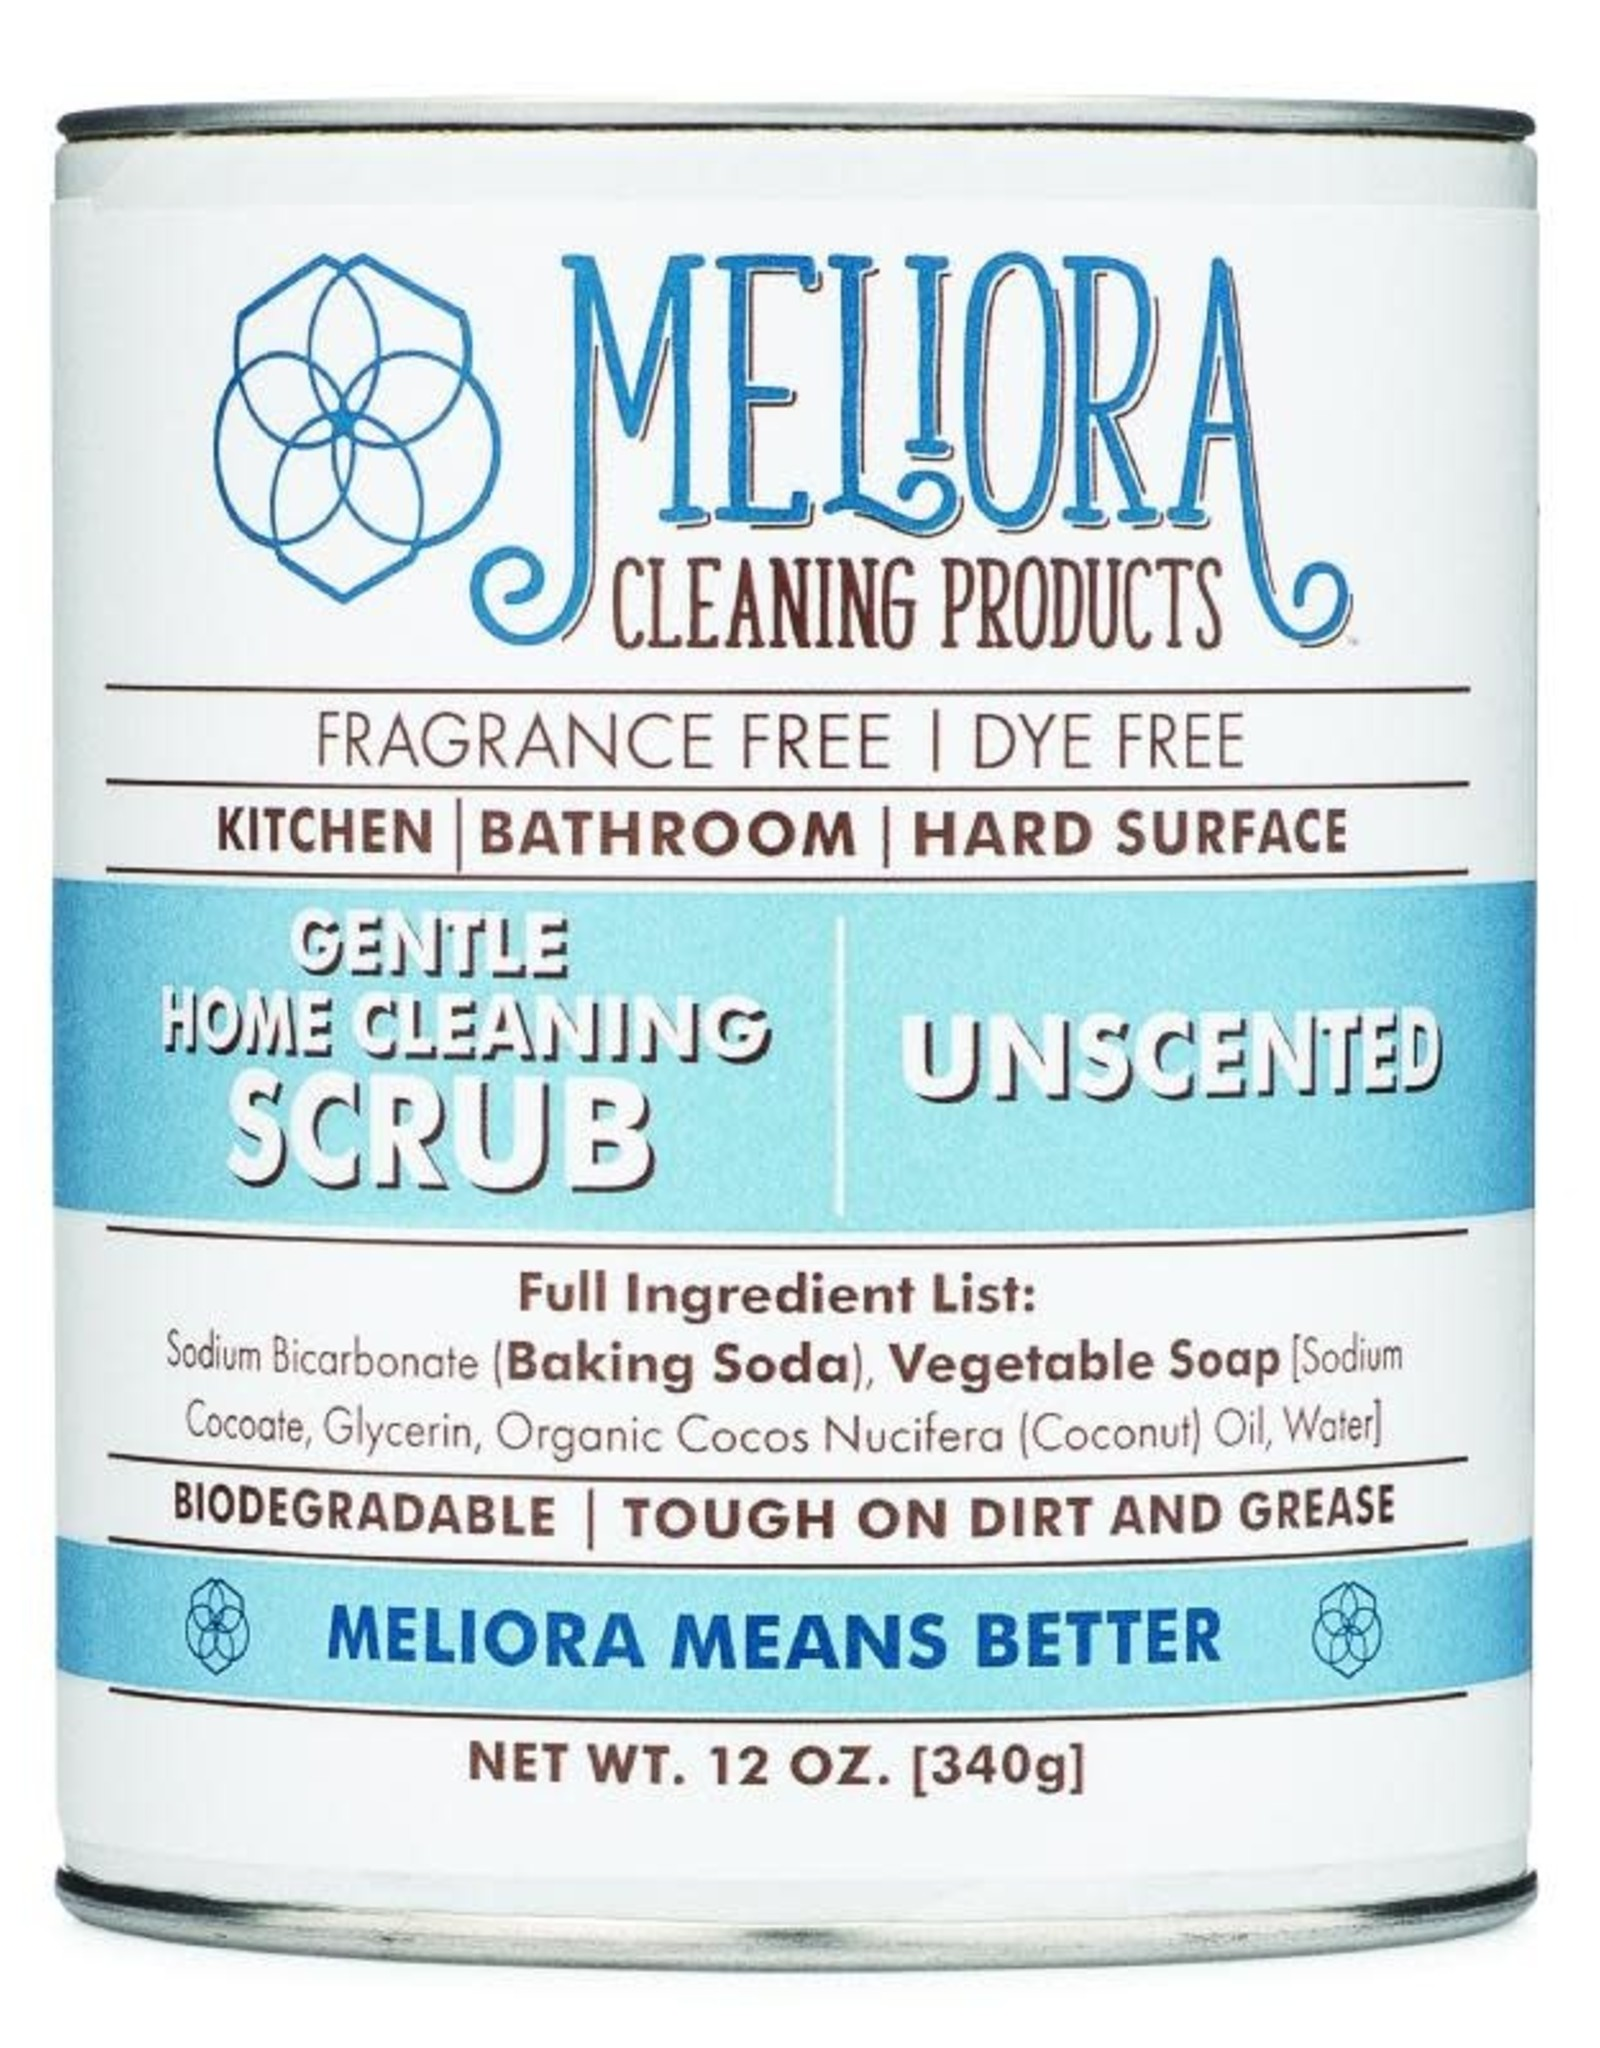 Meliora Gentle Home Cleaning Scrub Unscented